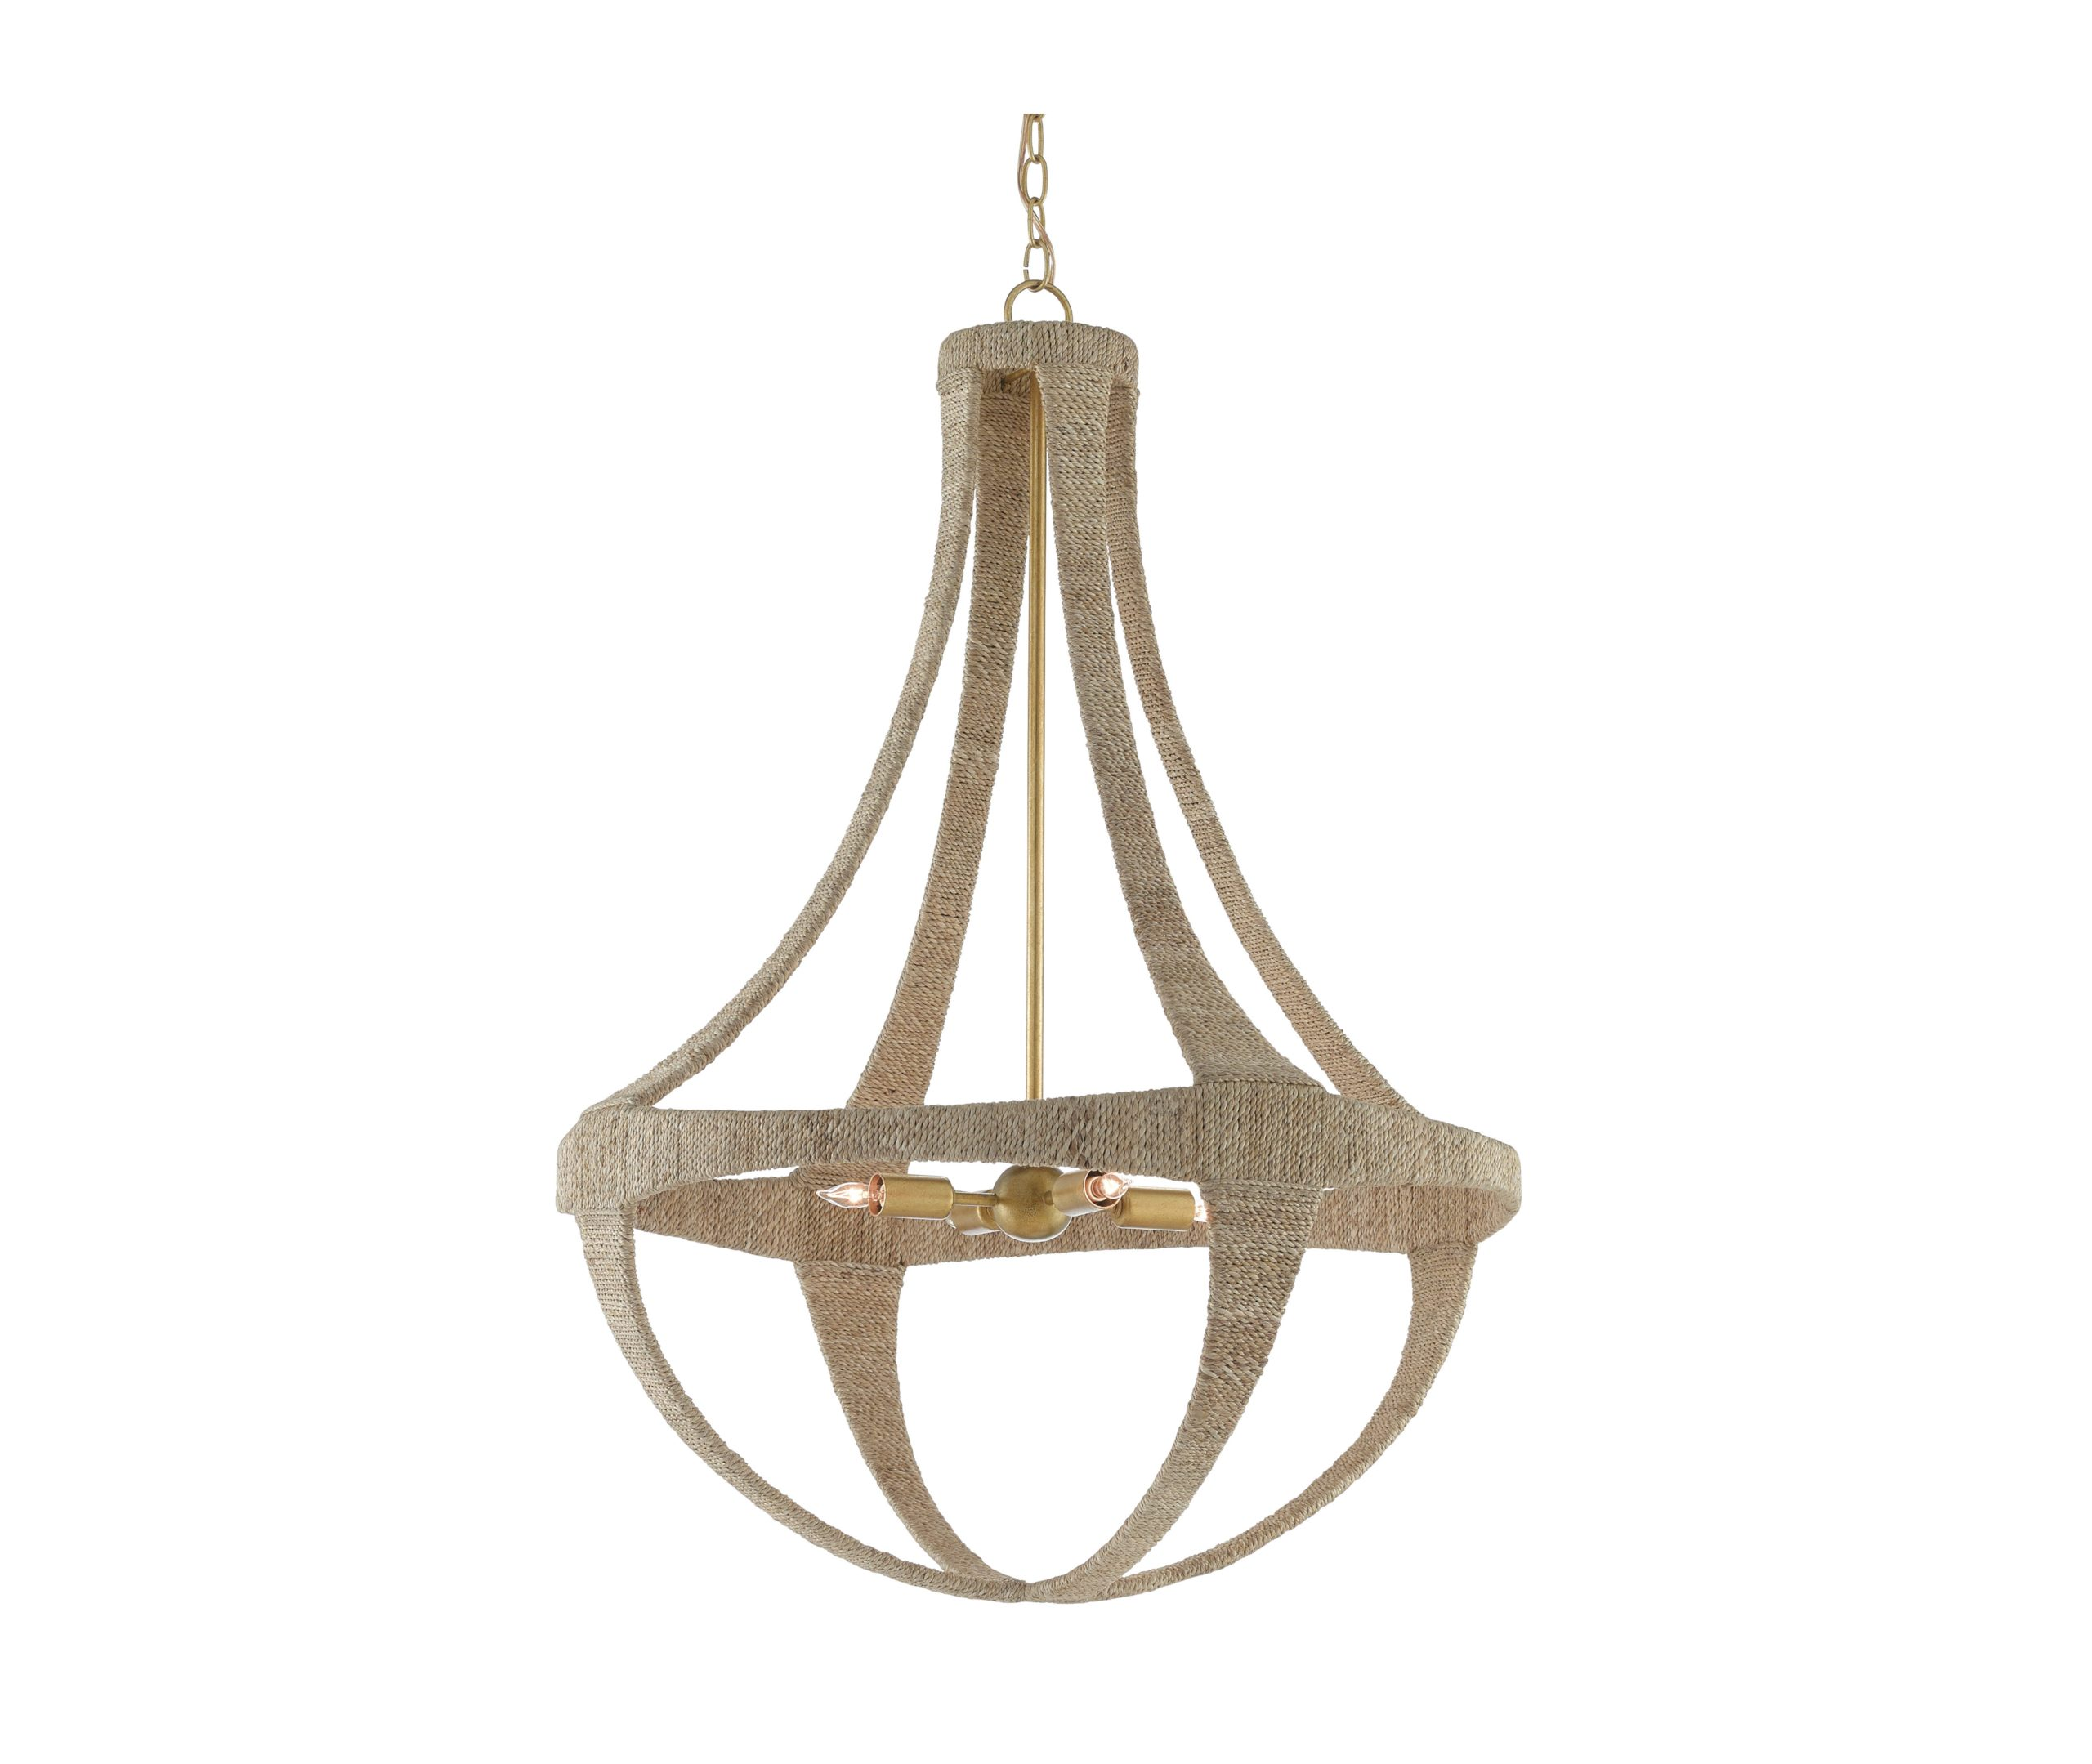 NYDC_WNWN_currey_and_co_products_ibiza_chandelier_9000-0385_